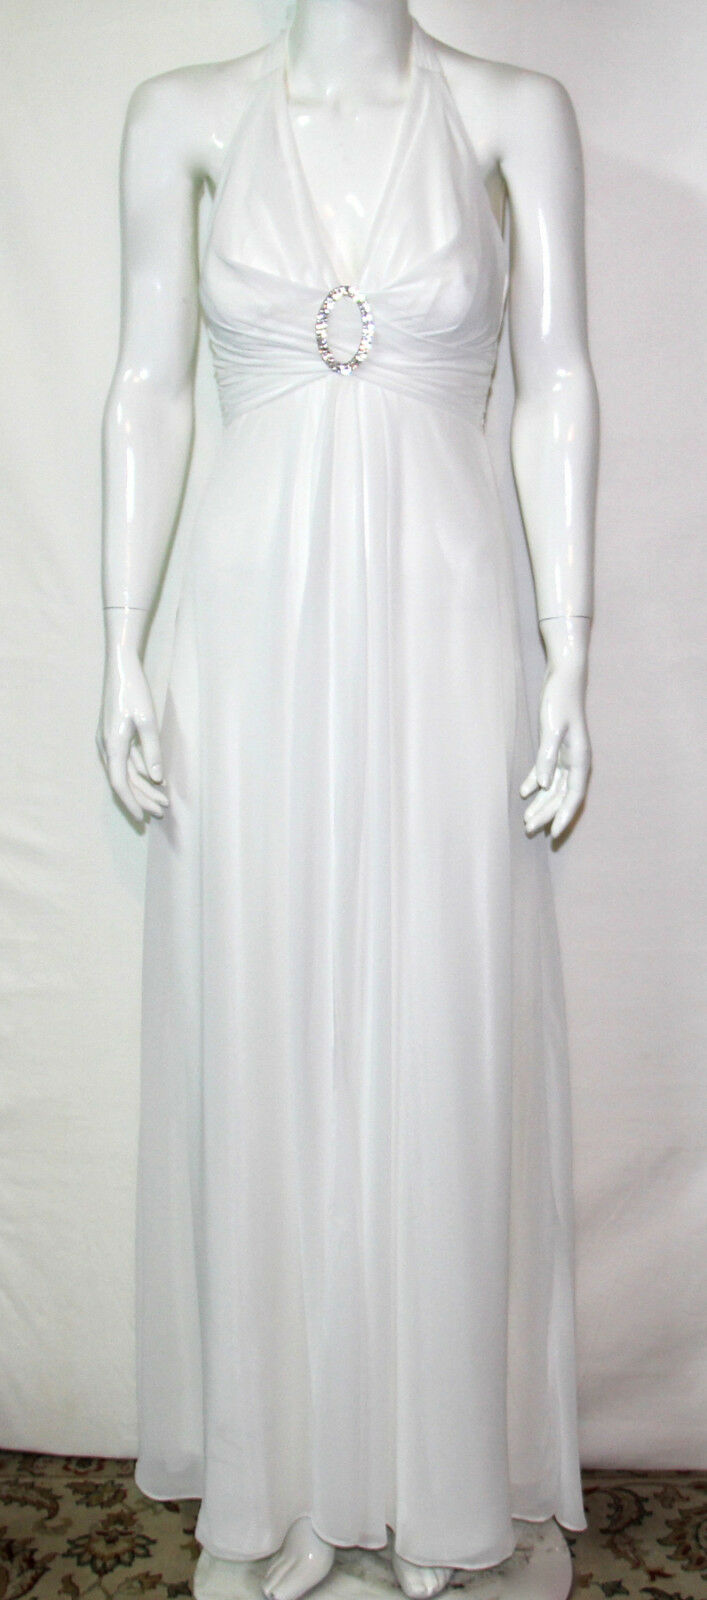 NEW Betsy & Adam Size 4 Embellished Halter Evening Gown IVORY